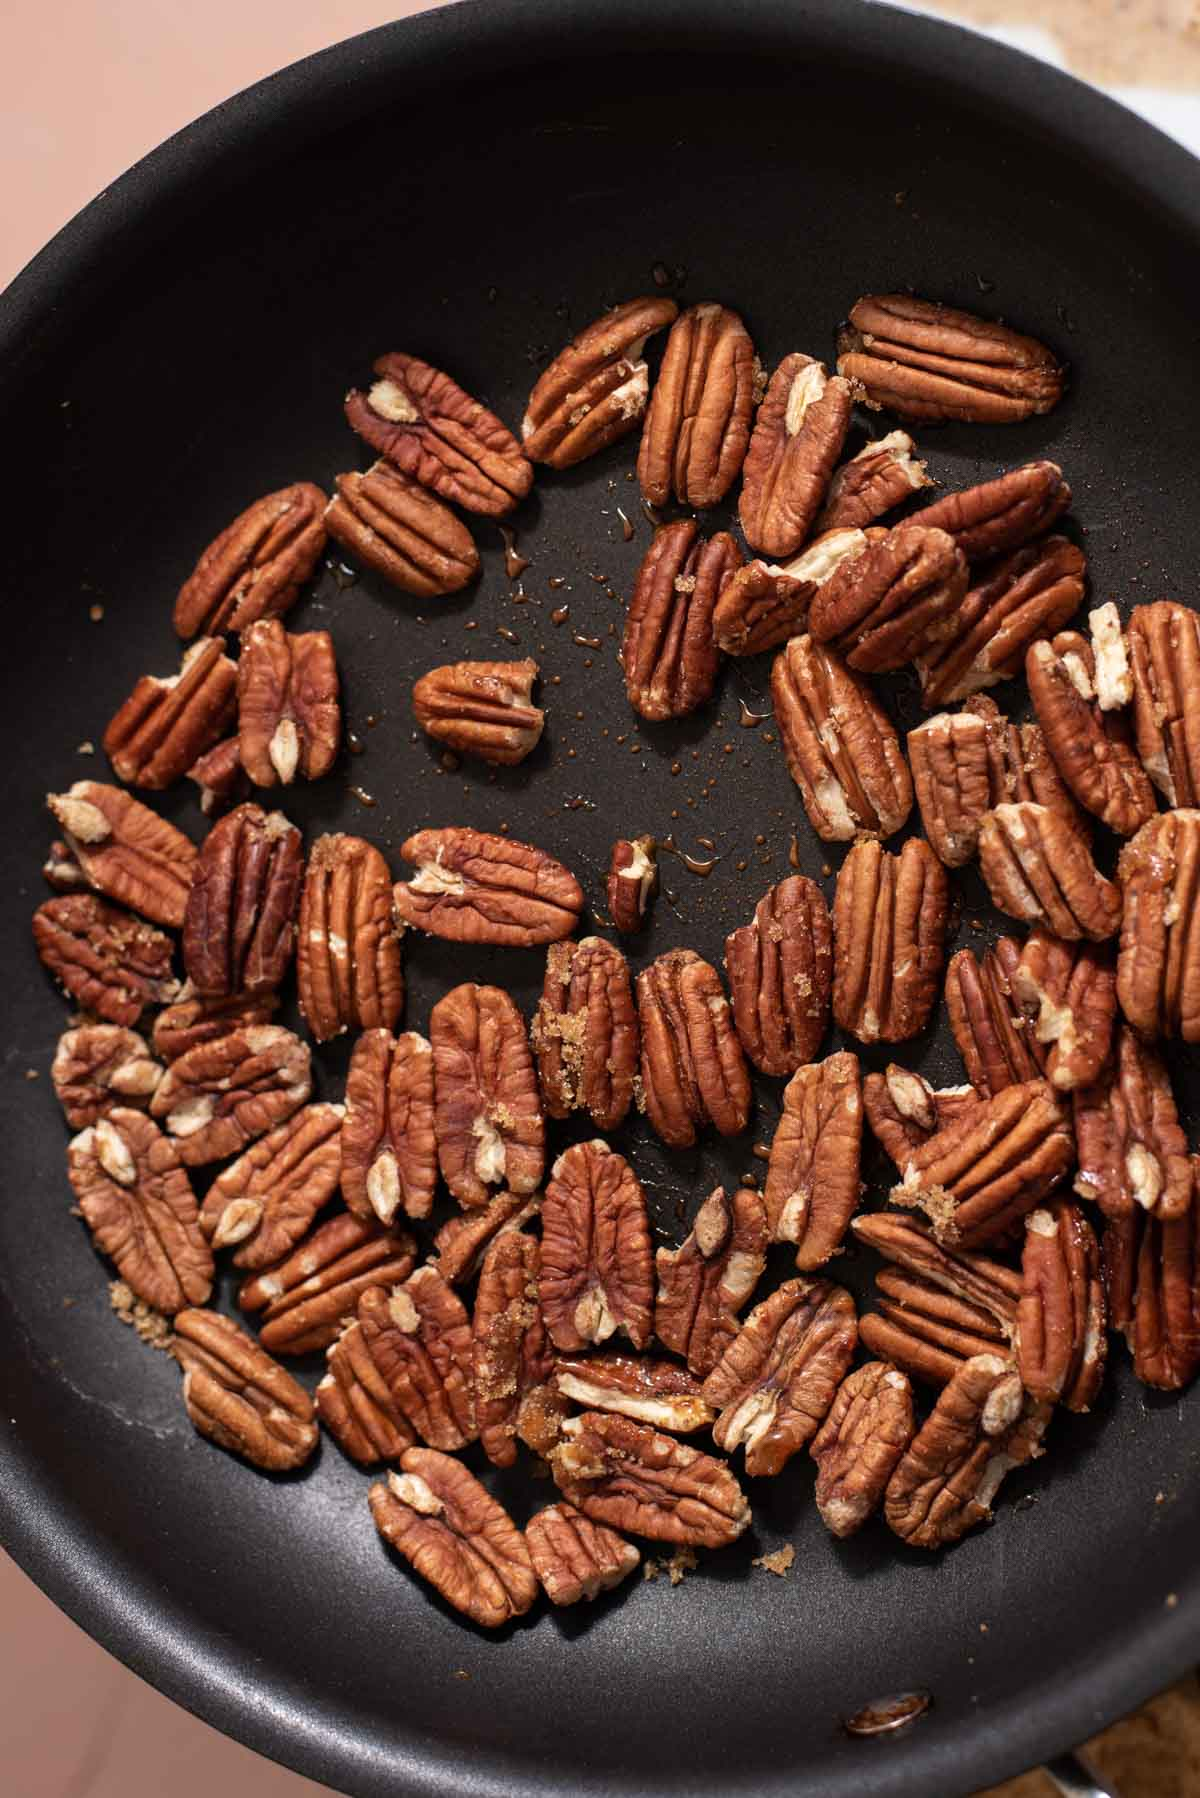 Whole pecans toasting in a black skillet